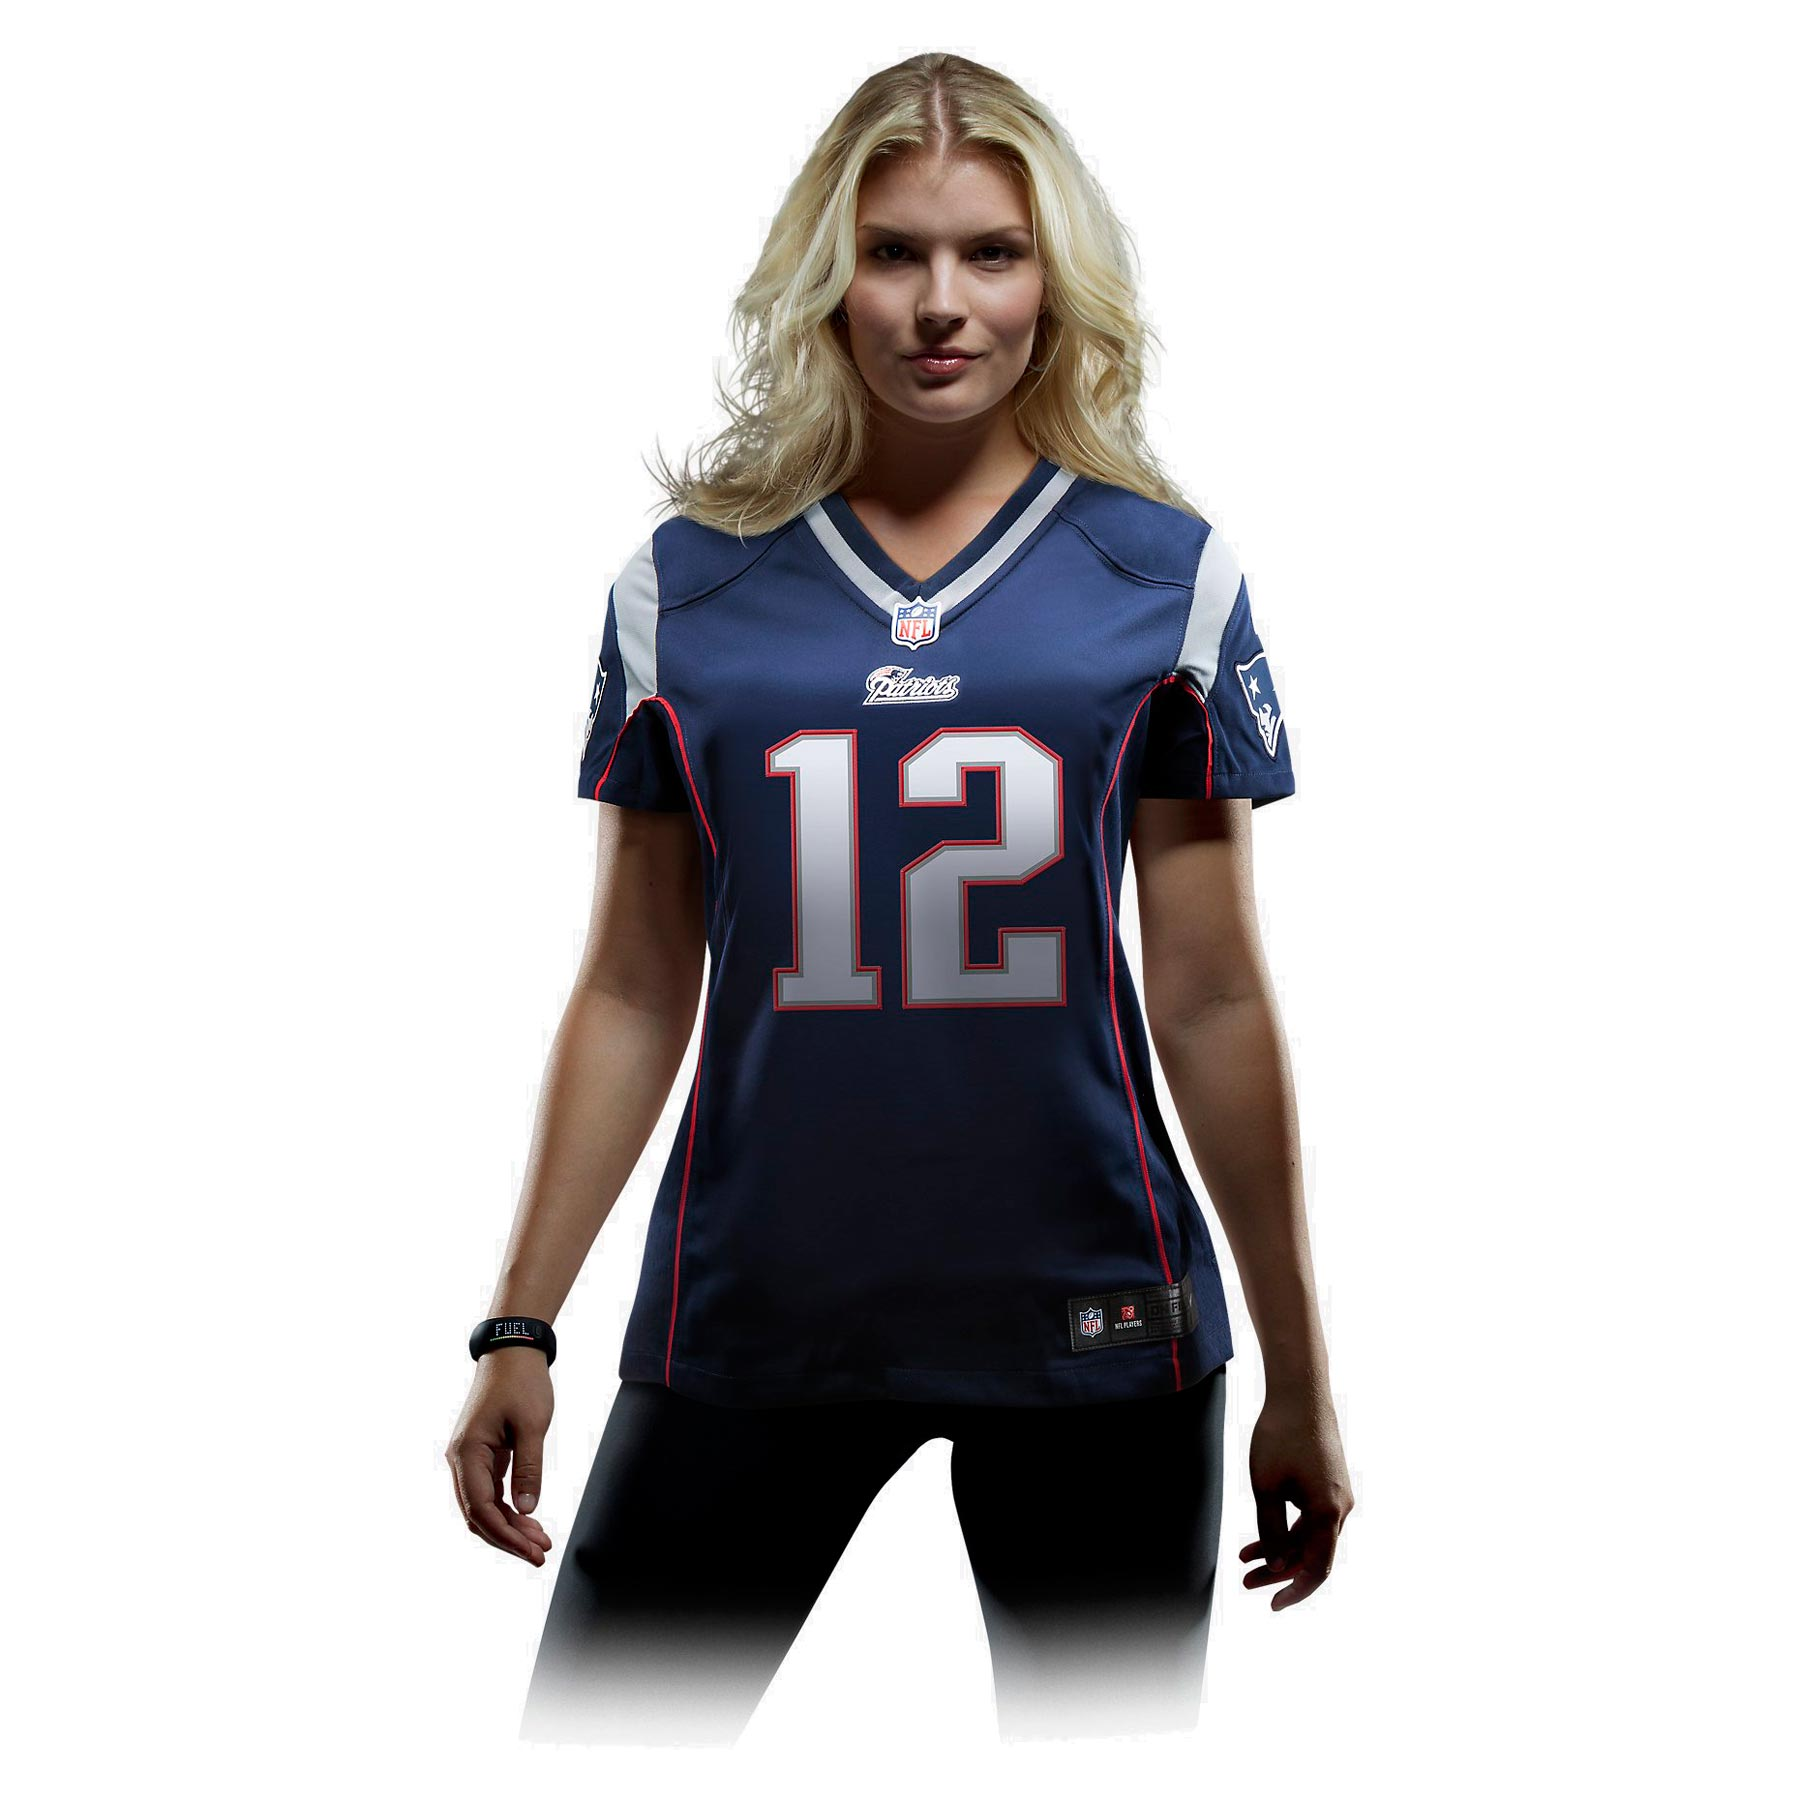 Images of Nfl Shirts For Women  Best Fashion Trends and Models